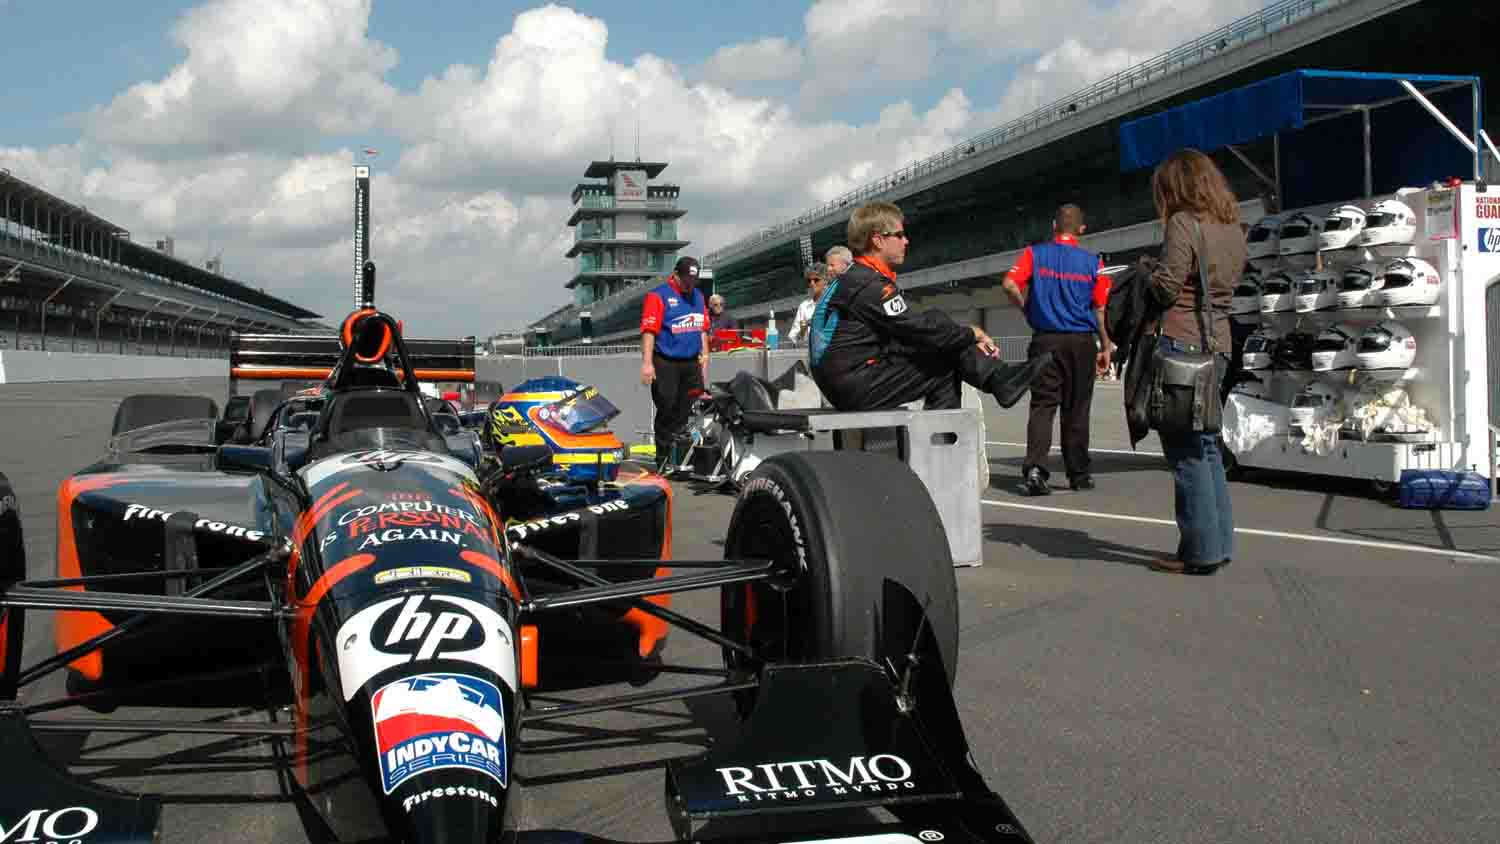 Indy racing experience 3